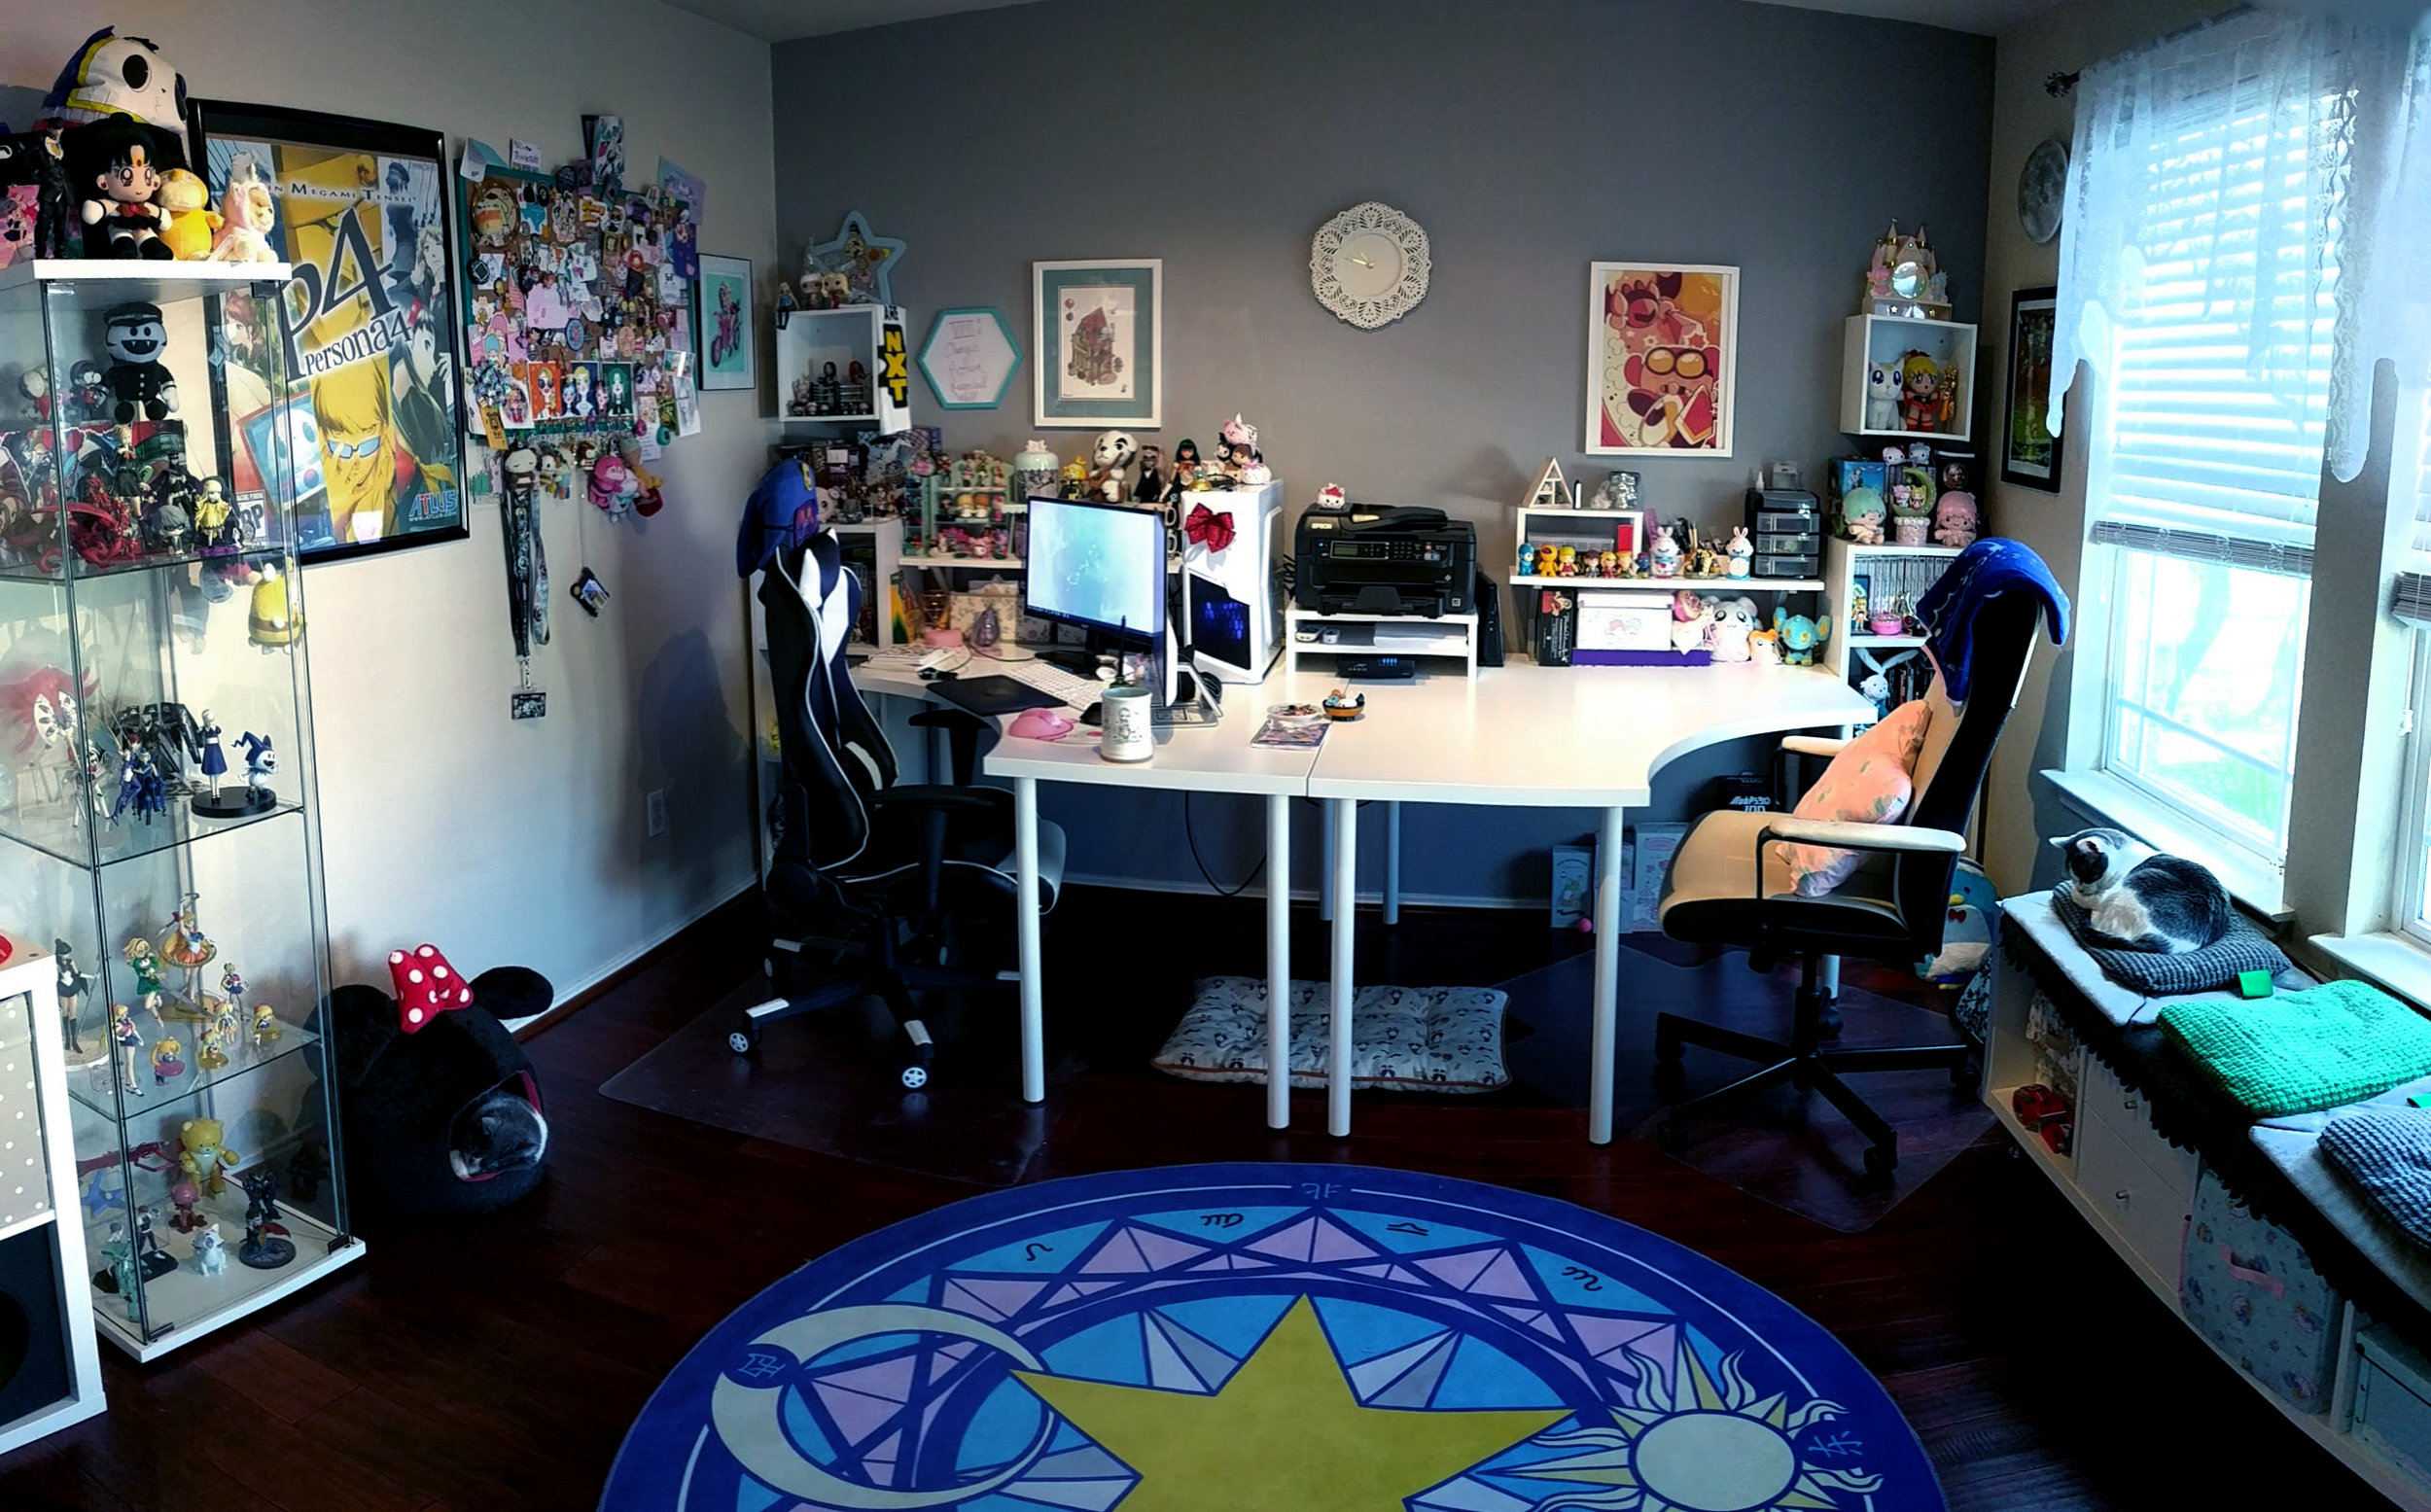 This is my home office where I work surrounded by the things that inspire me. Also pictured are my cats, Porkchop and Mochi.